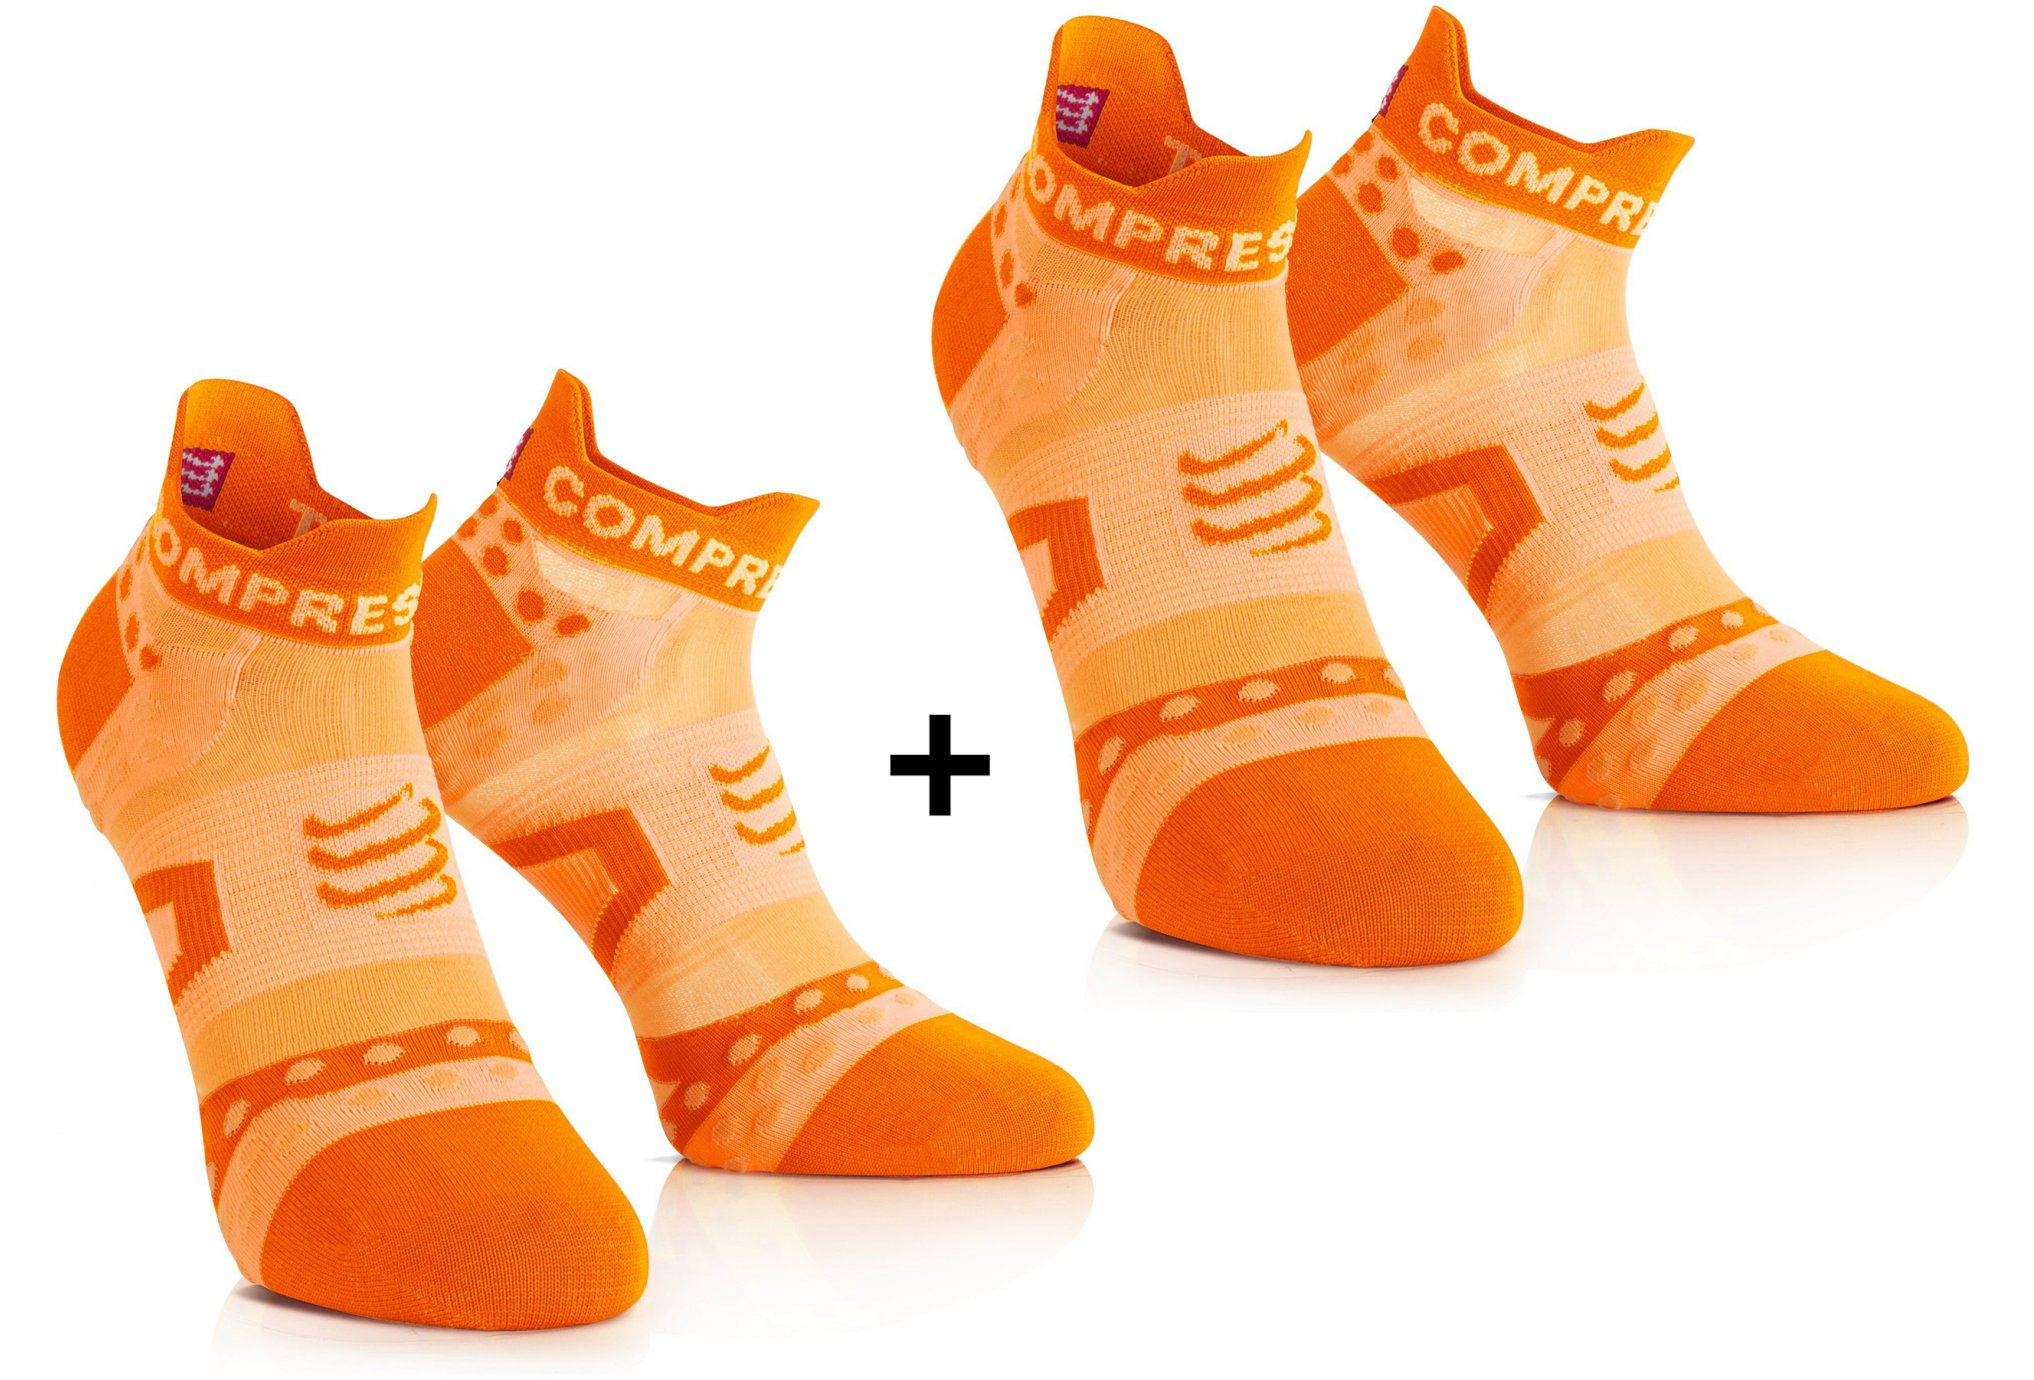 Compressport Pack Chaussettes Pro Racing Ultra Light Run Low Chaussettes